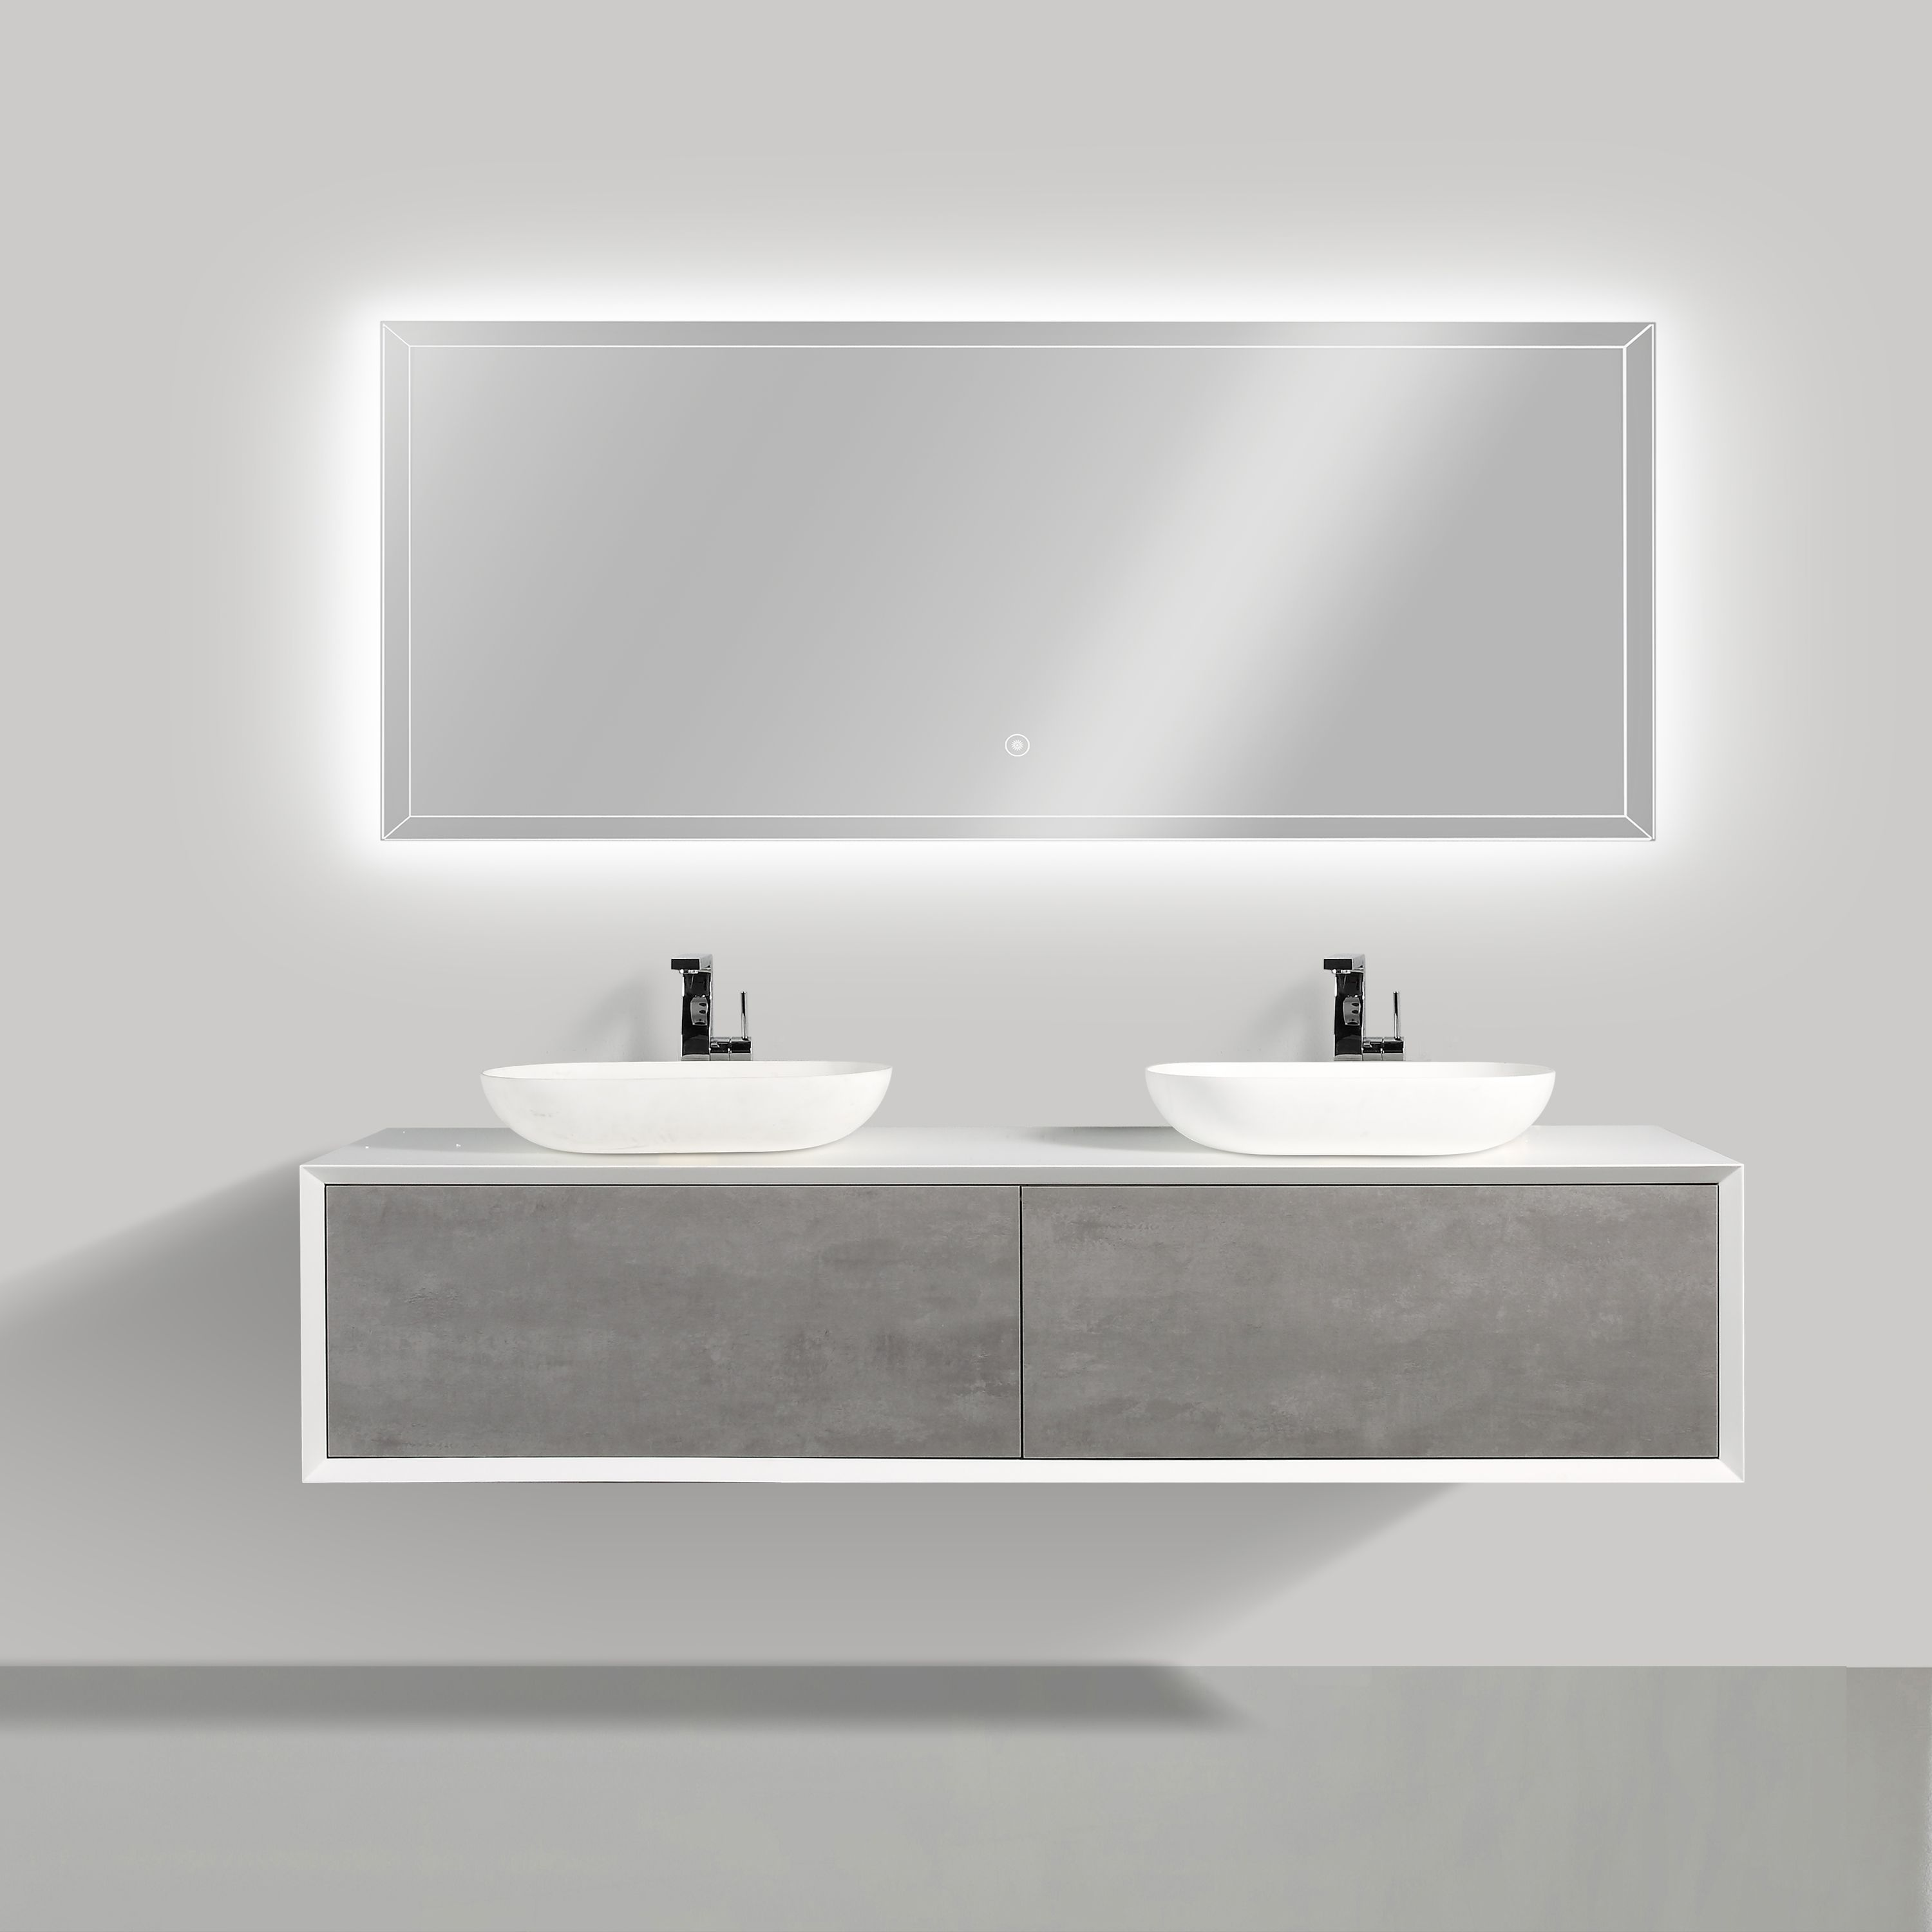 Bathroom furniture set FIONA 1800 white matte body and concrete- effect drawers - mirror and basin optional